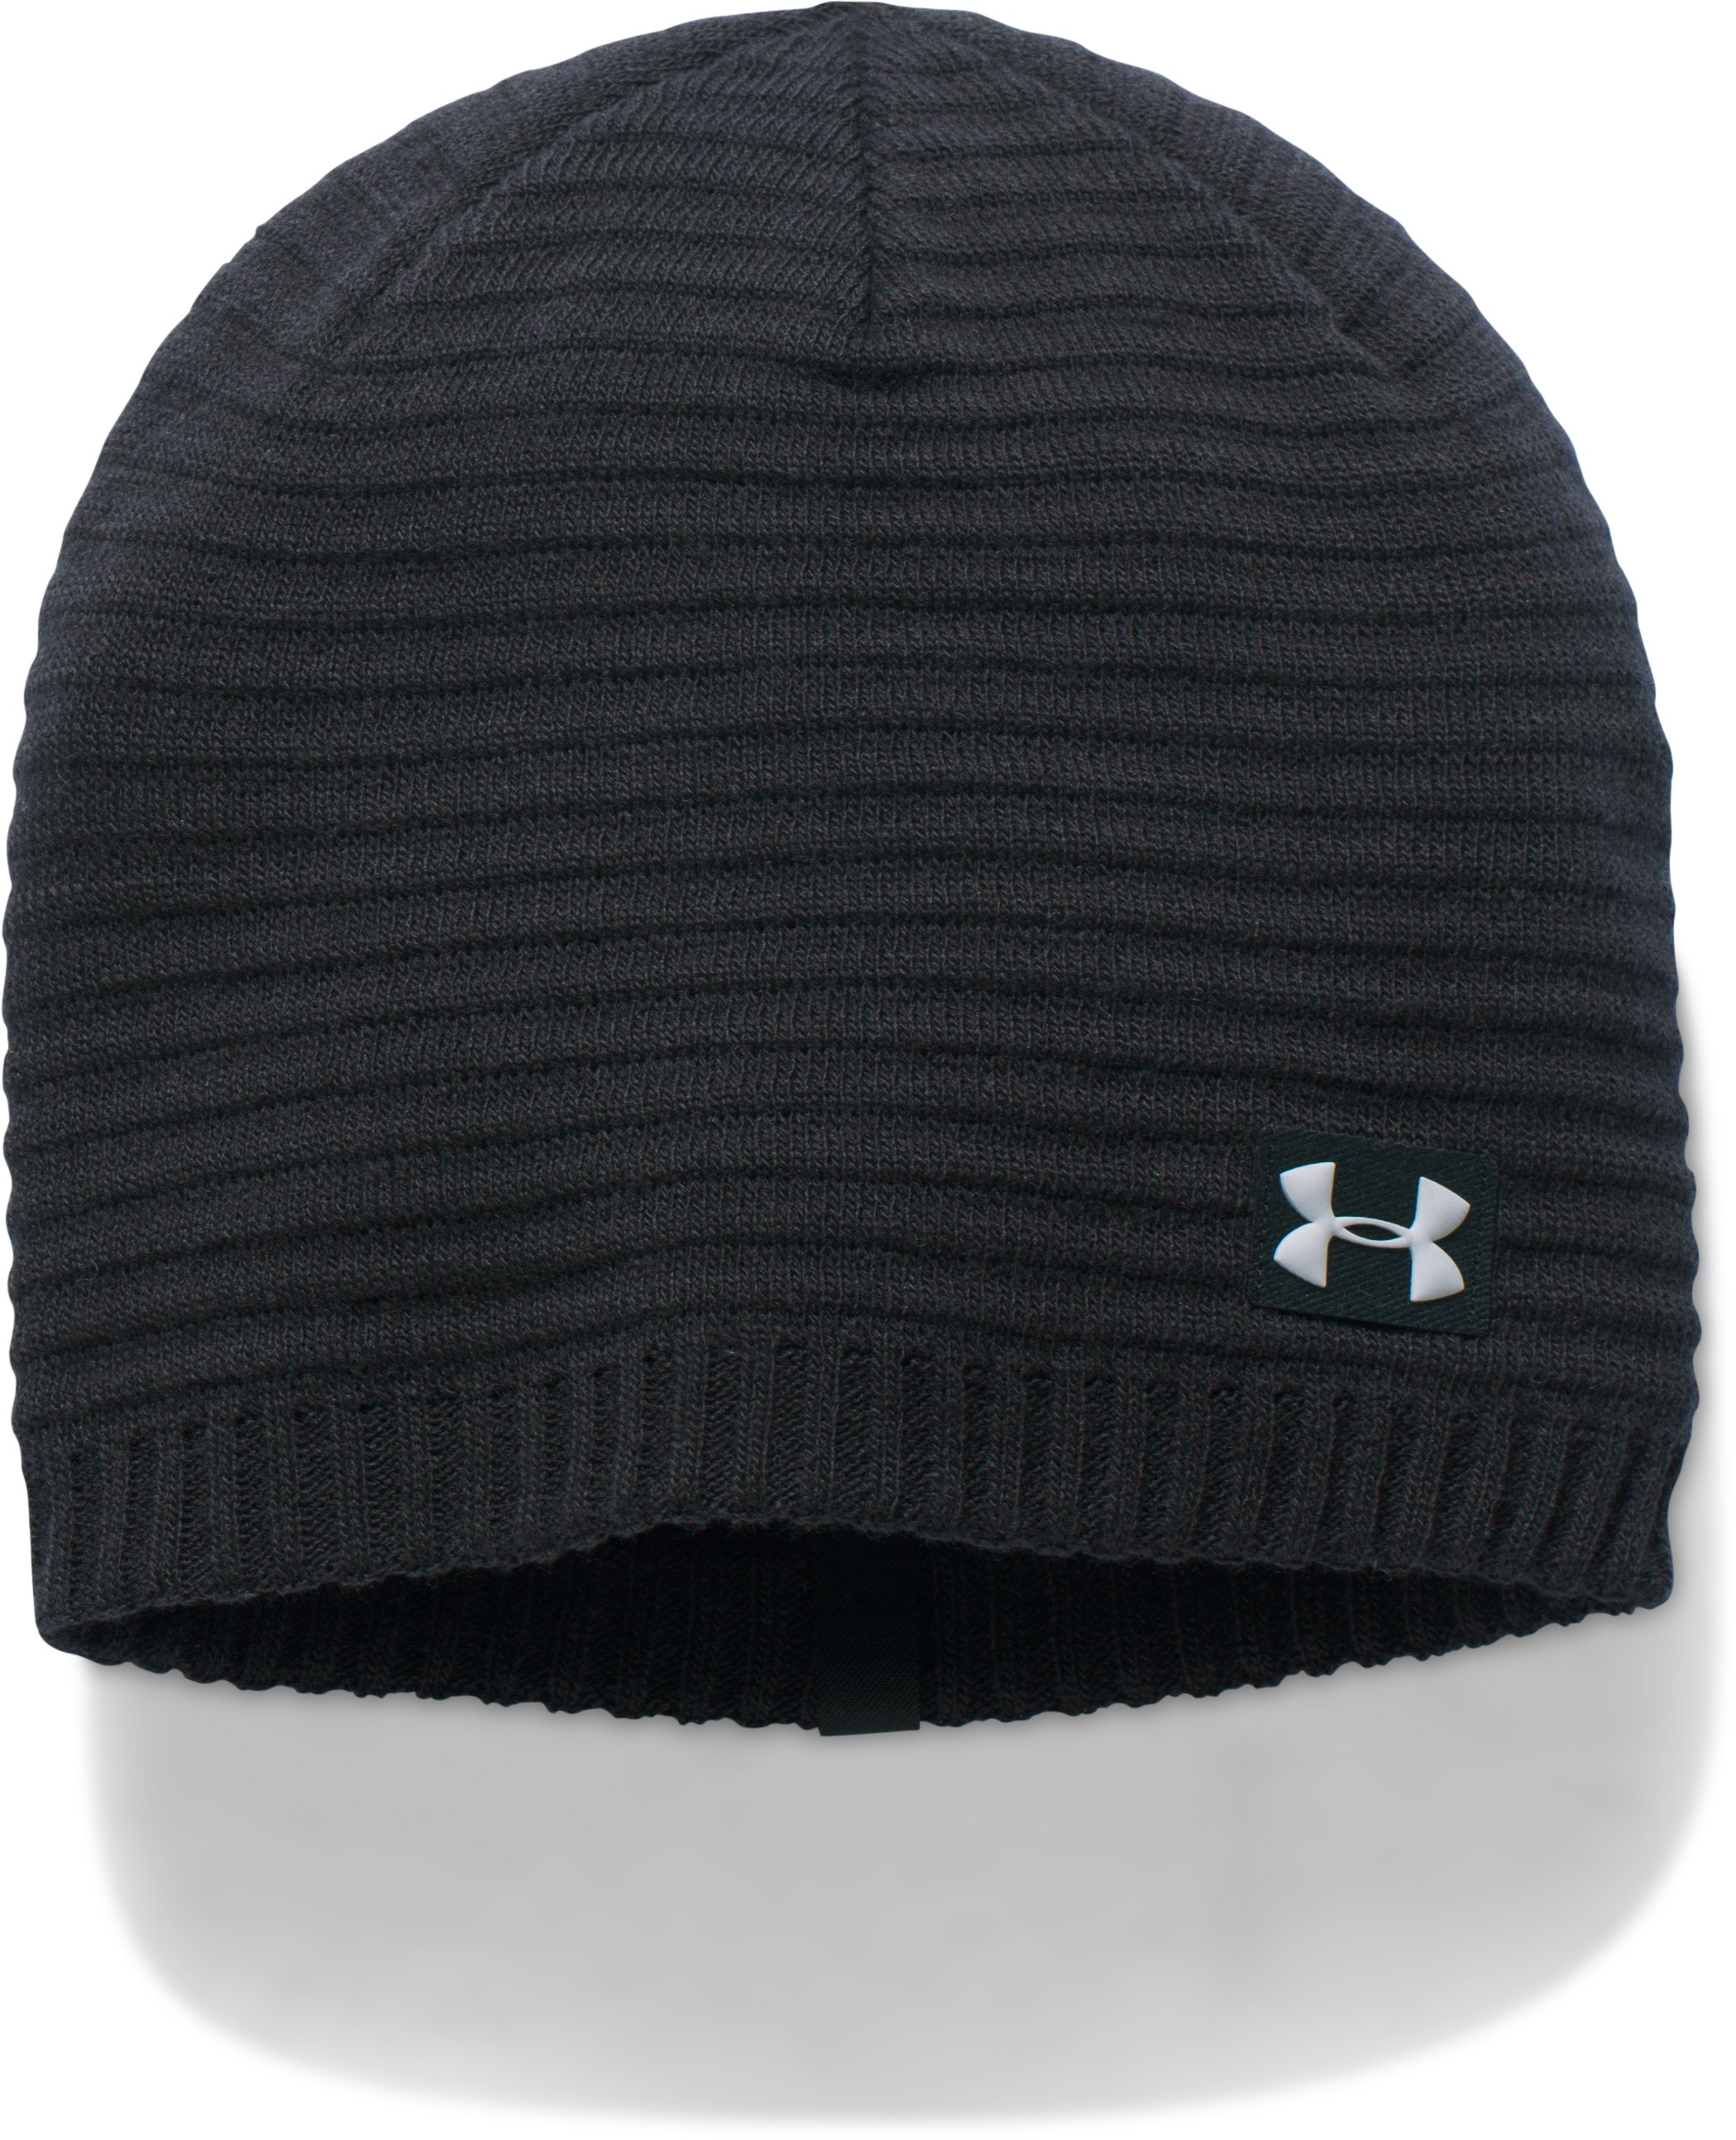 Men's UA Jacquard Knit Beanie, Black ,